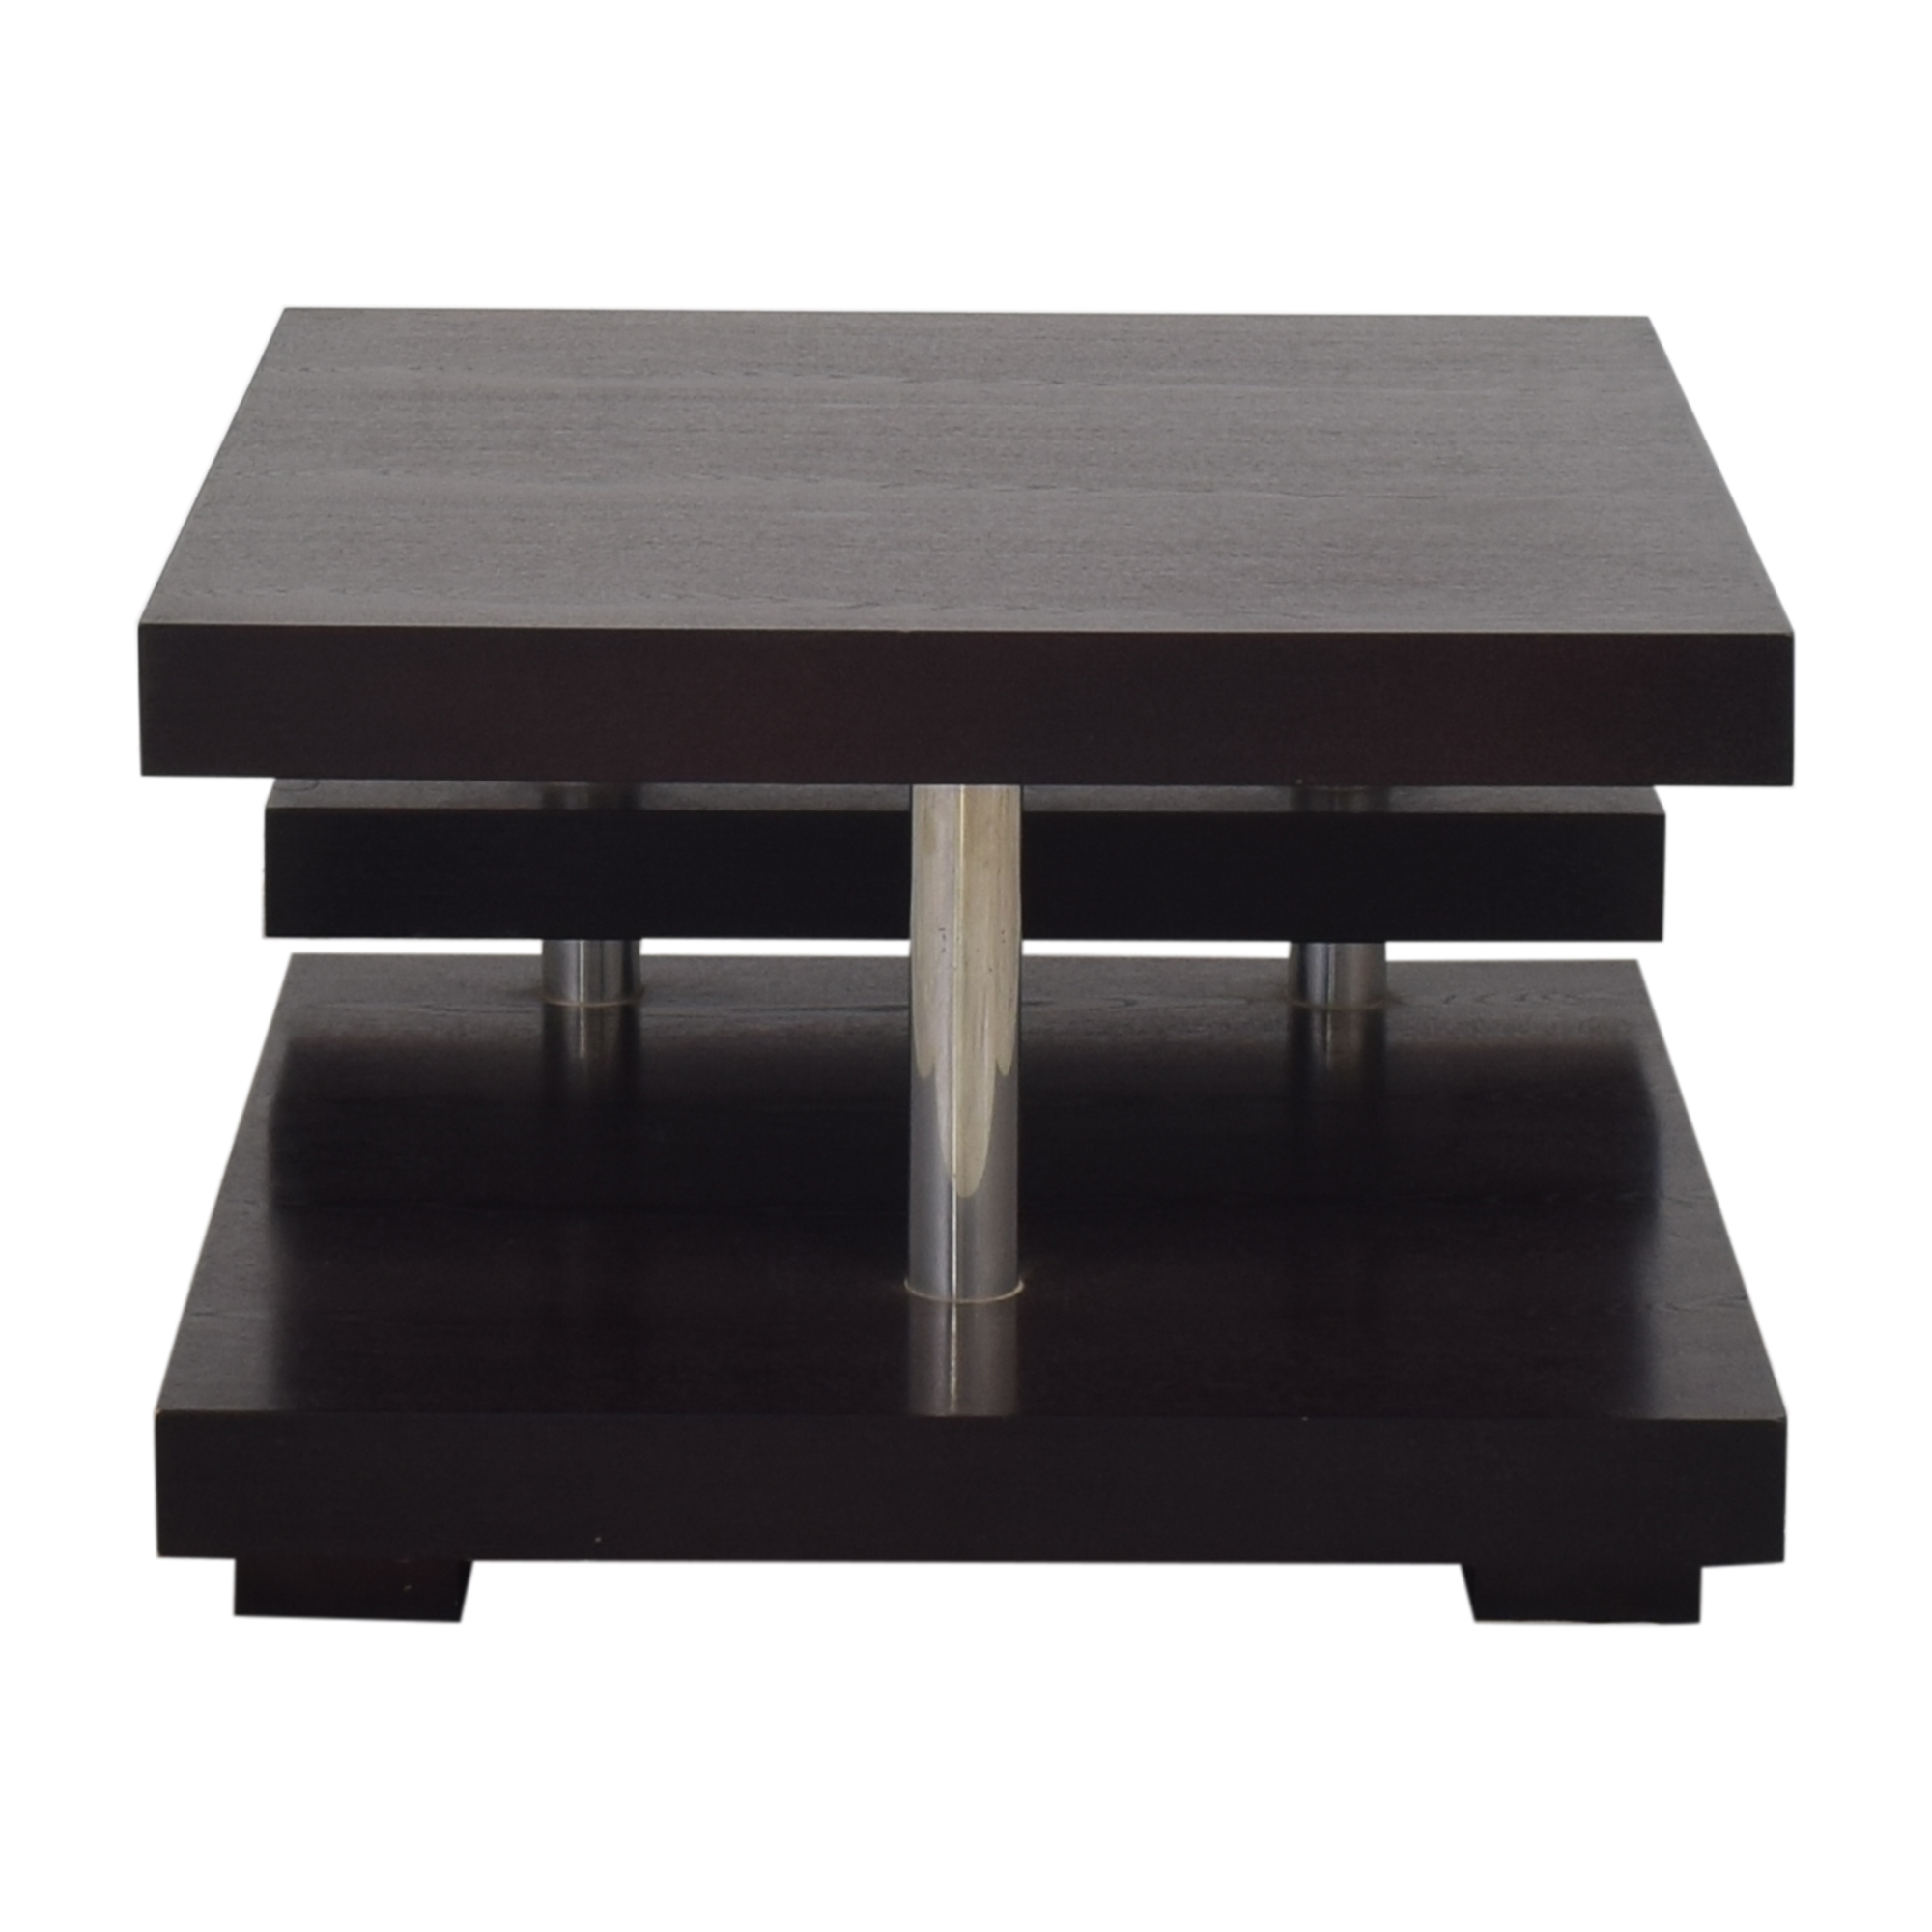 Contemporary Square Coffee Table Tables